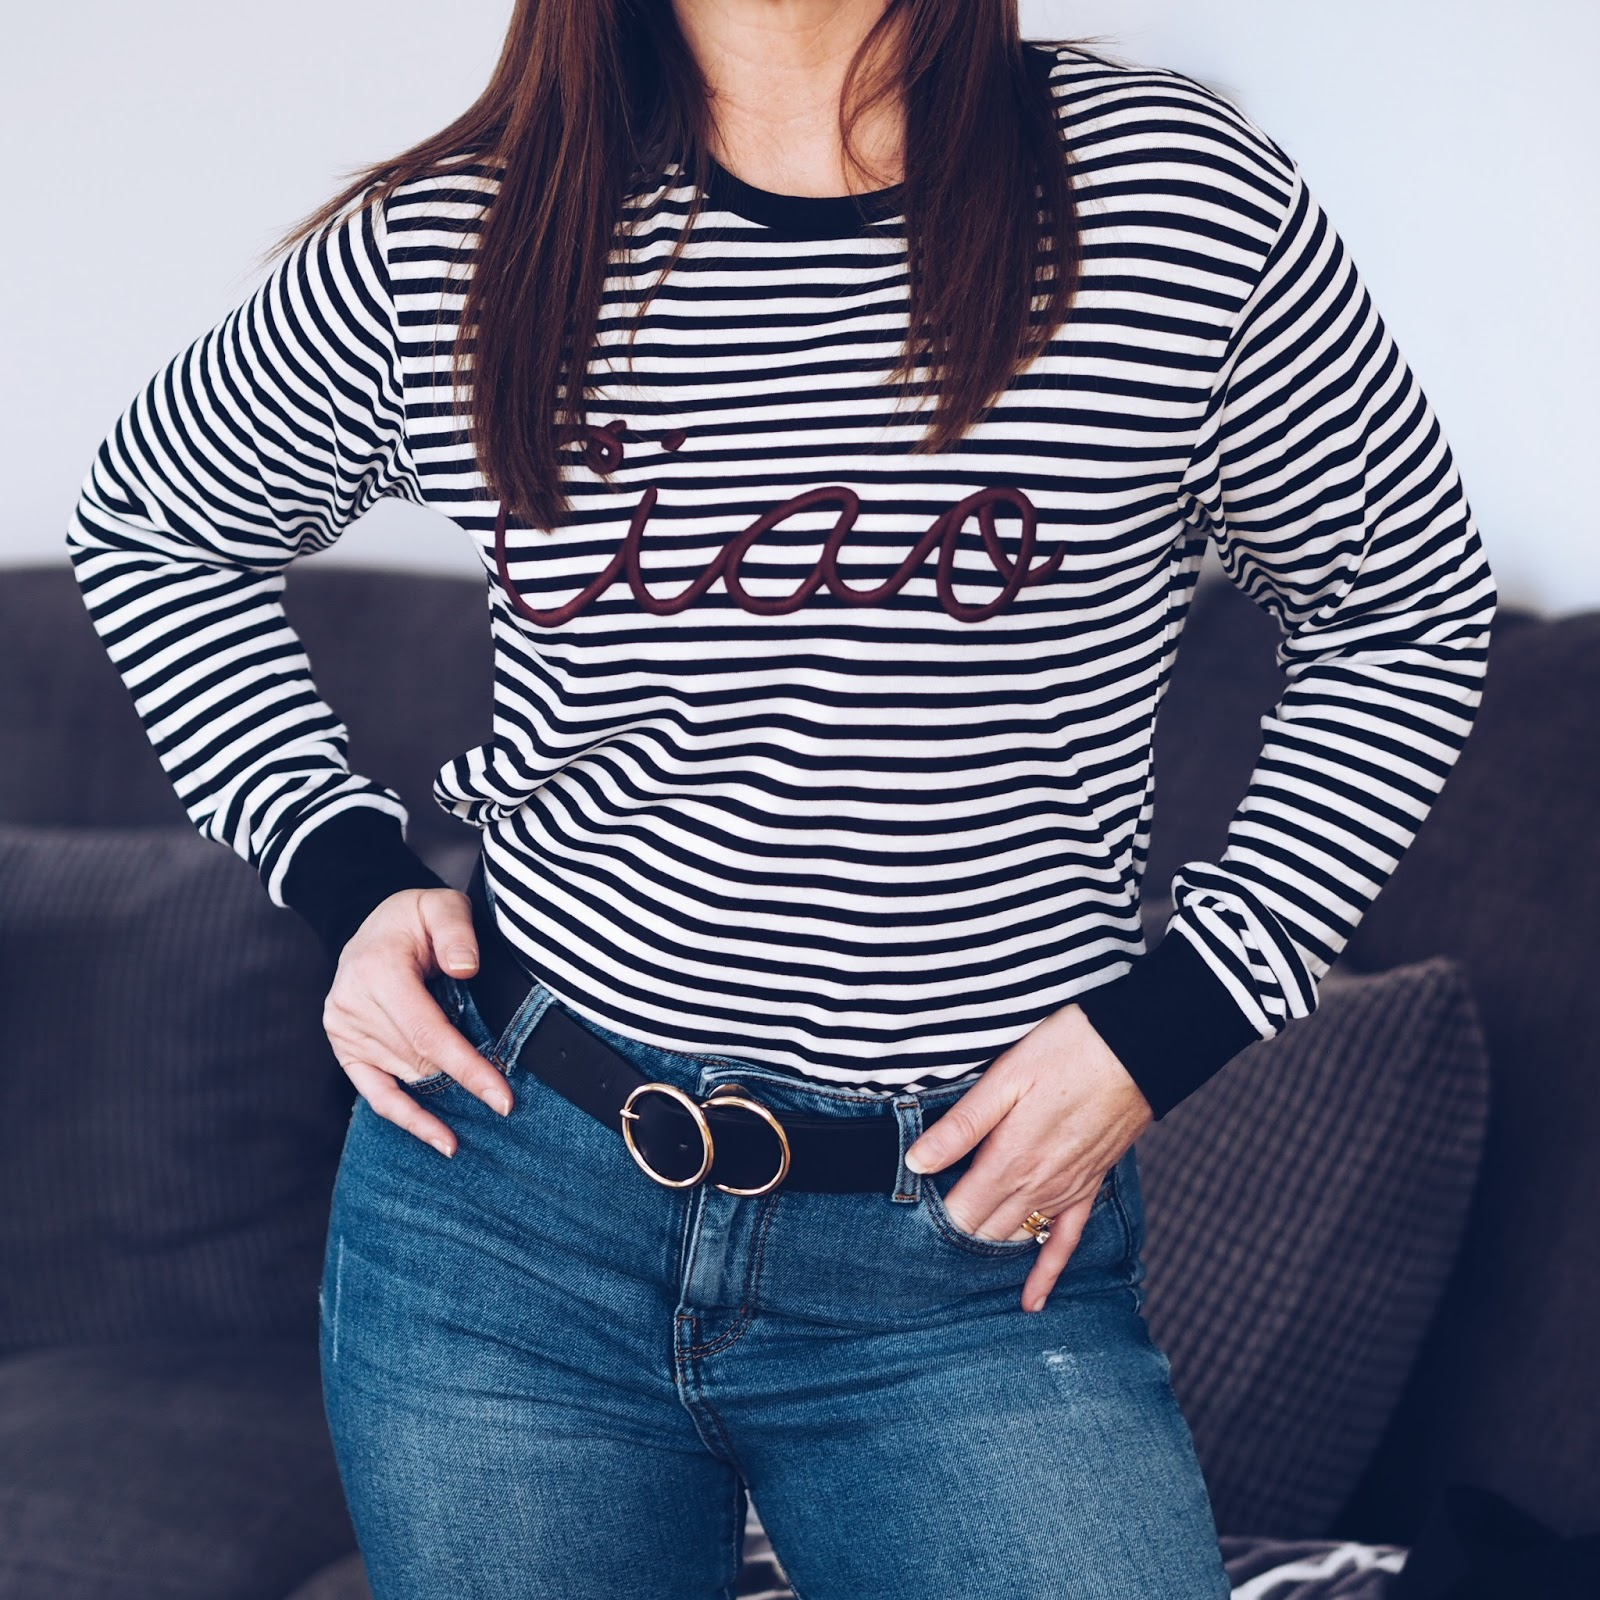 Casual look featuring Topshop ciao slogan striped long sleeved top and blazer \ River Island belt \ fashion \ style \ Priceless Life of Mine \ Over 40 lifestyle blog